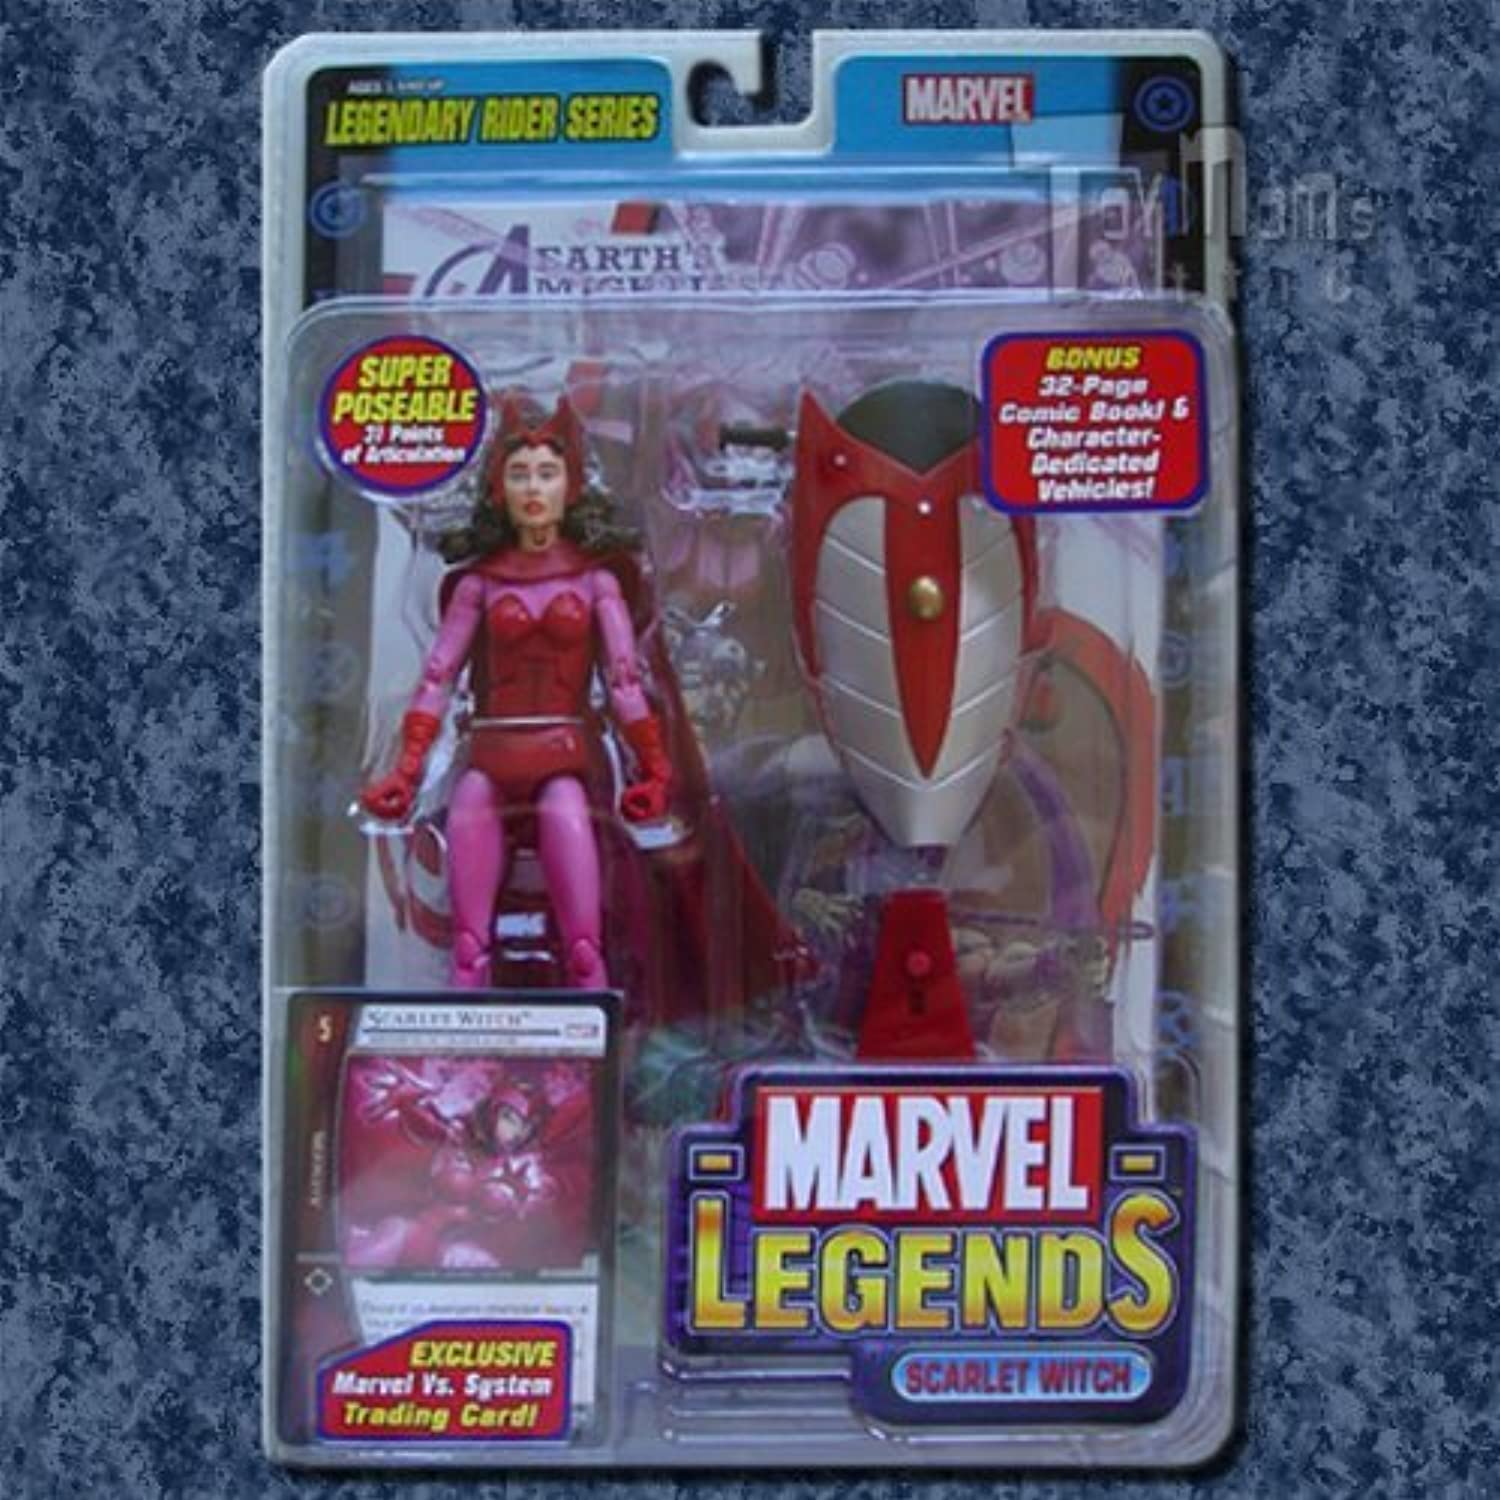 Marvel Legends Series 11 Action Figure Scarlet Witch by ToyBiz [Toy]